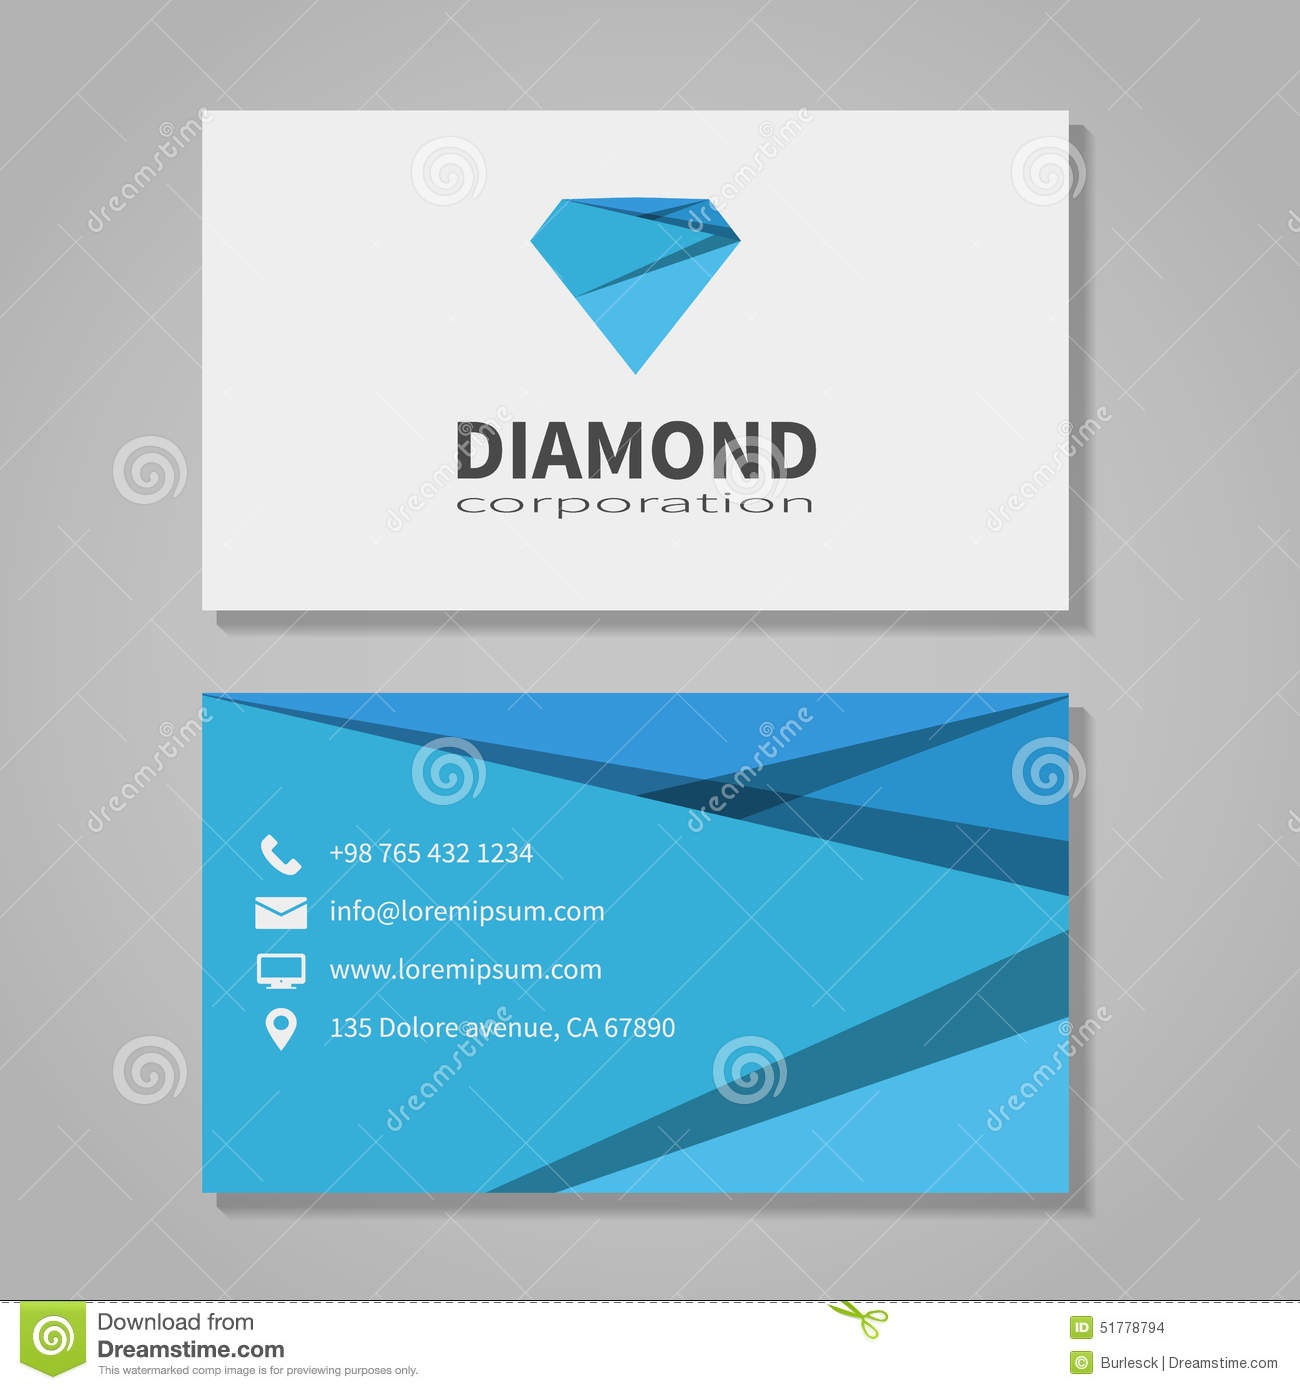 Diamond corporation business card template stock vector download diamond corporation business card template stock vector illustration of communication concept 51778794 colourmoves